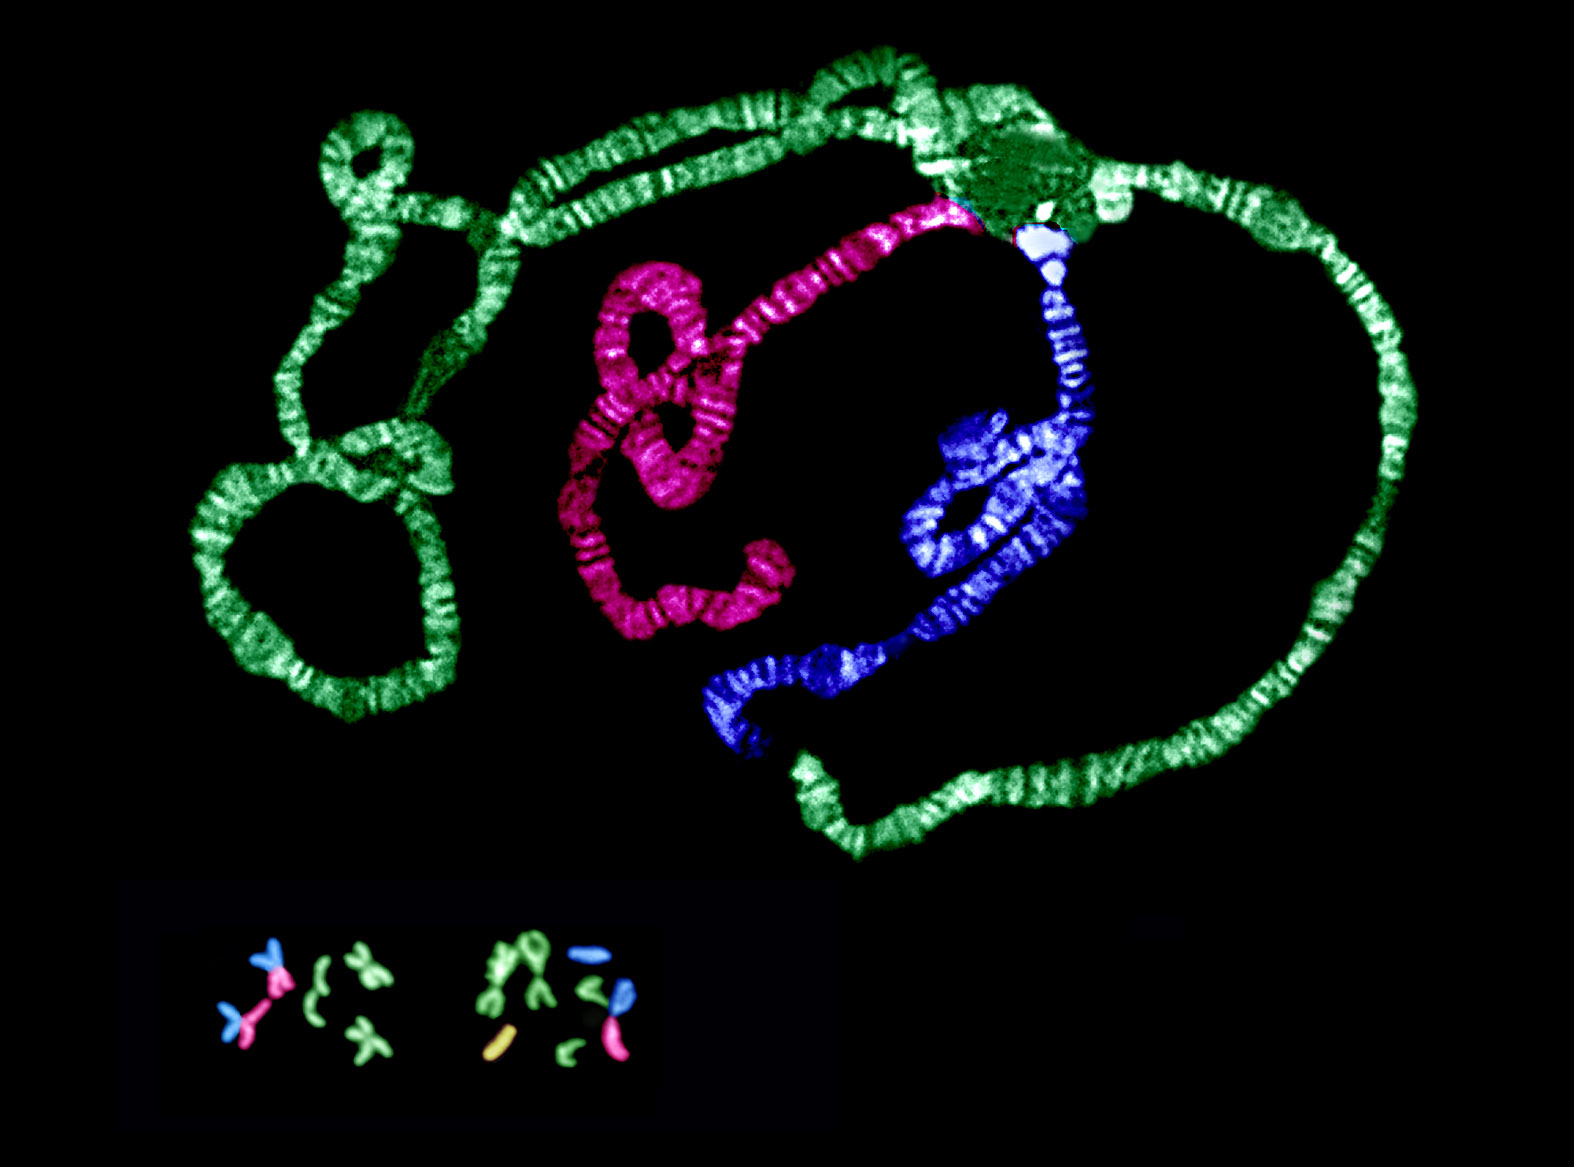 False-colored chromosomes of Drosophila americana.